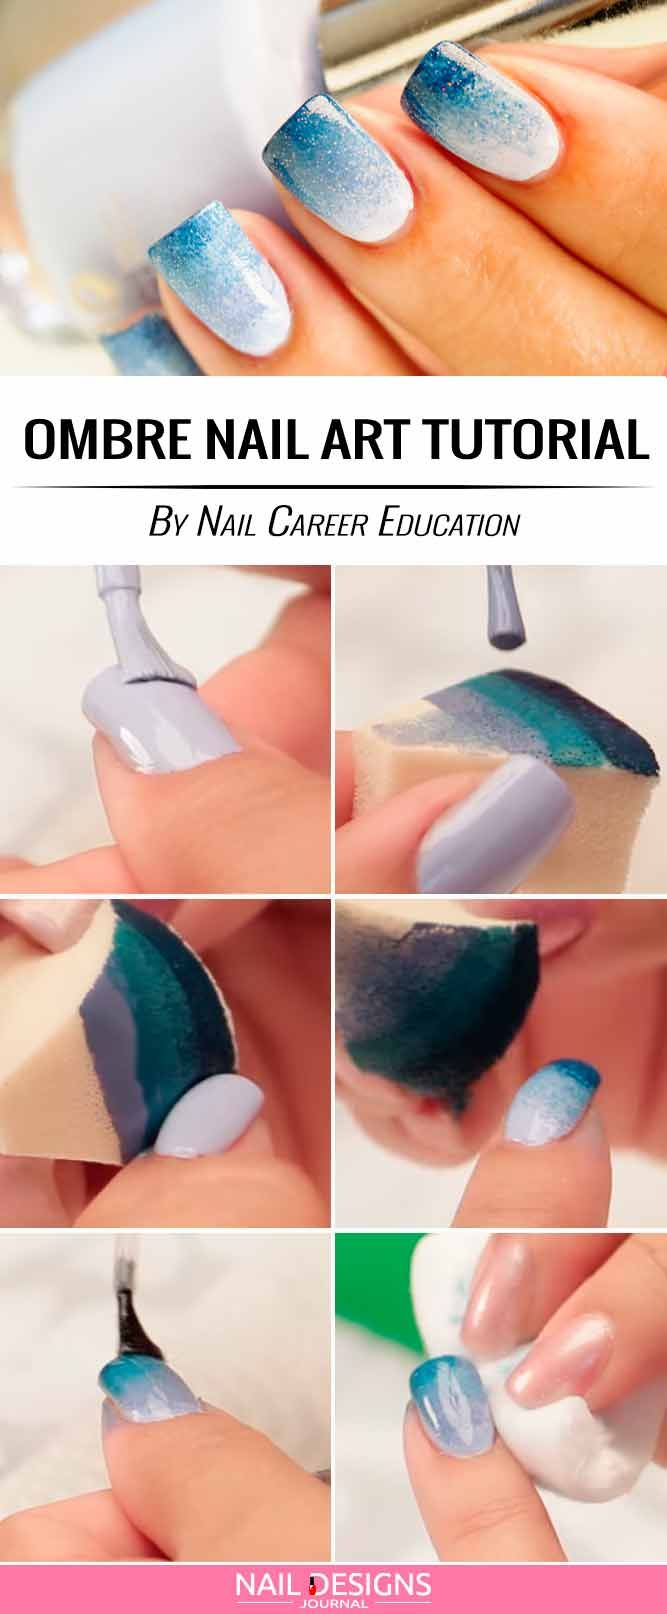 17 Super Easy Nail Designs Diy Tutorials Pinterest Nagel